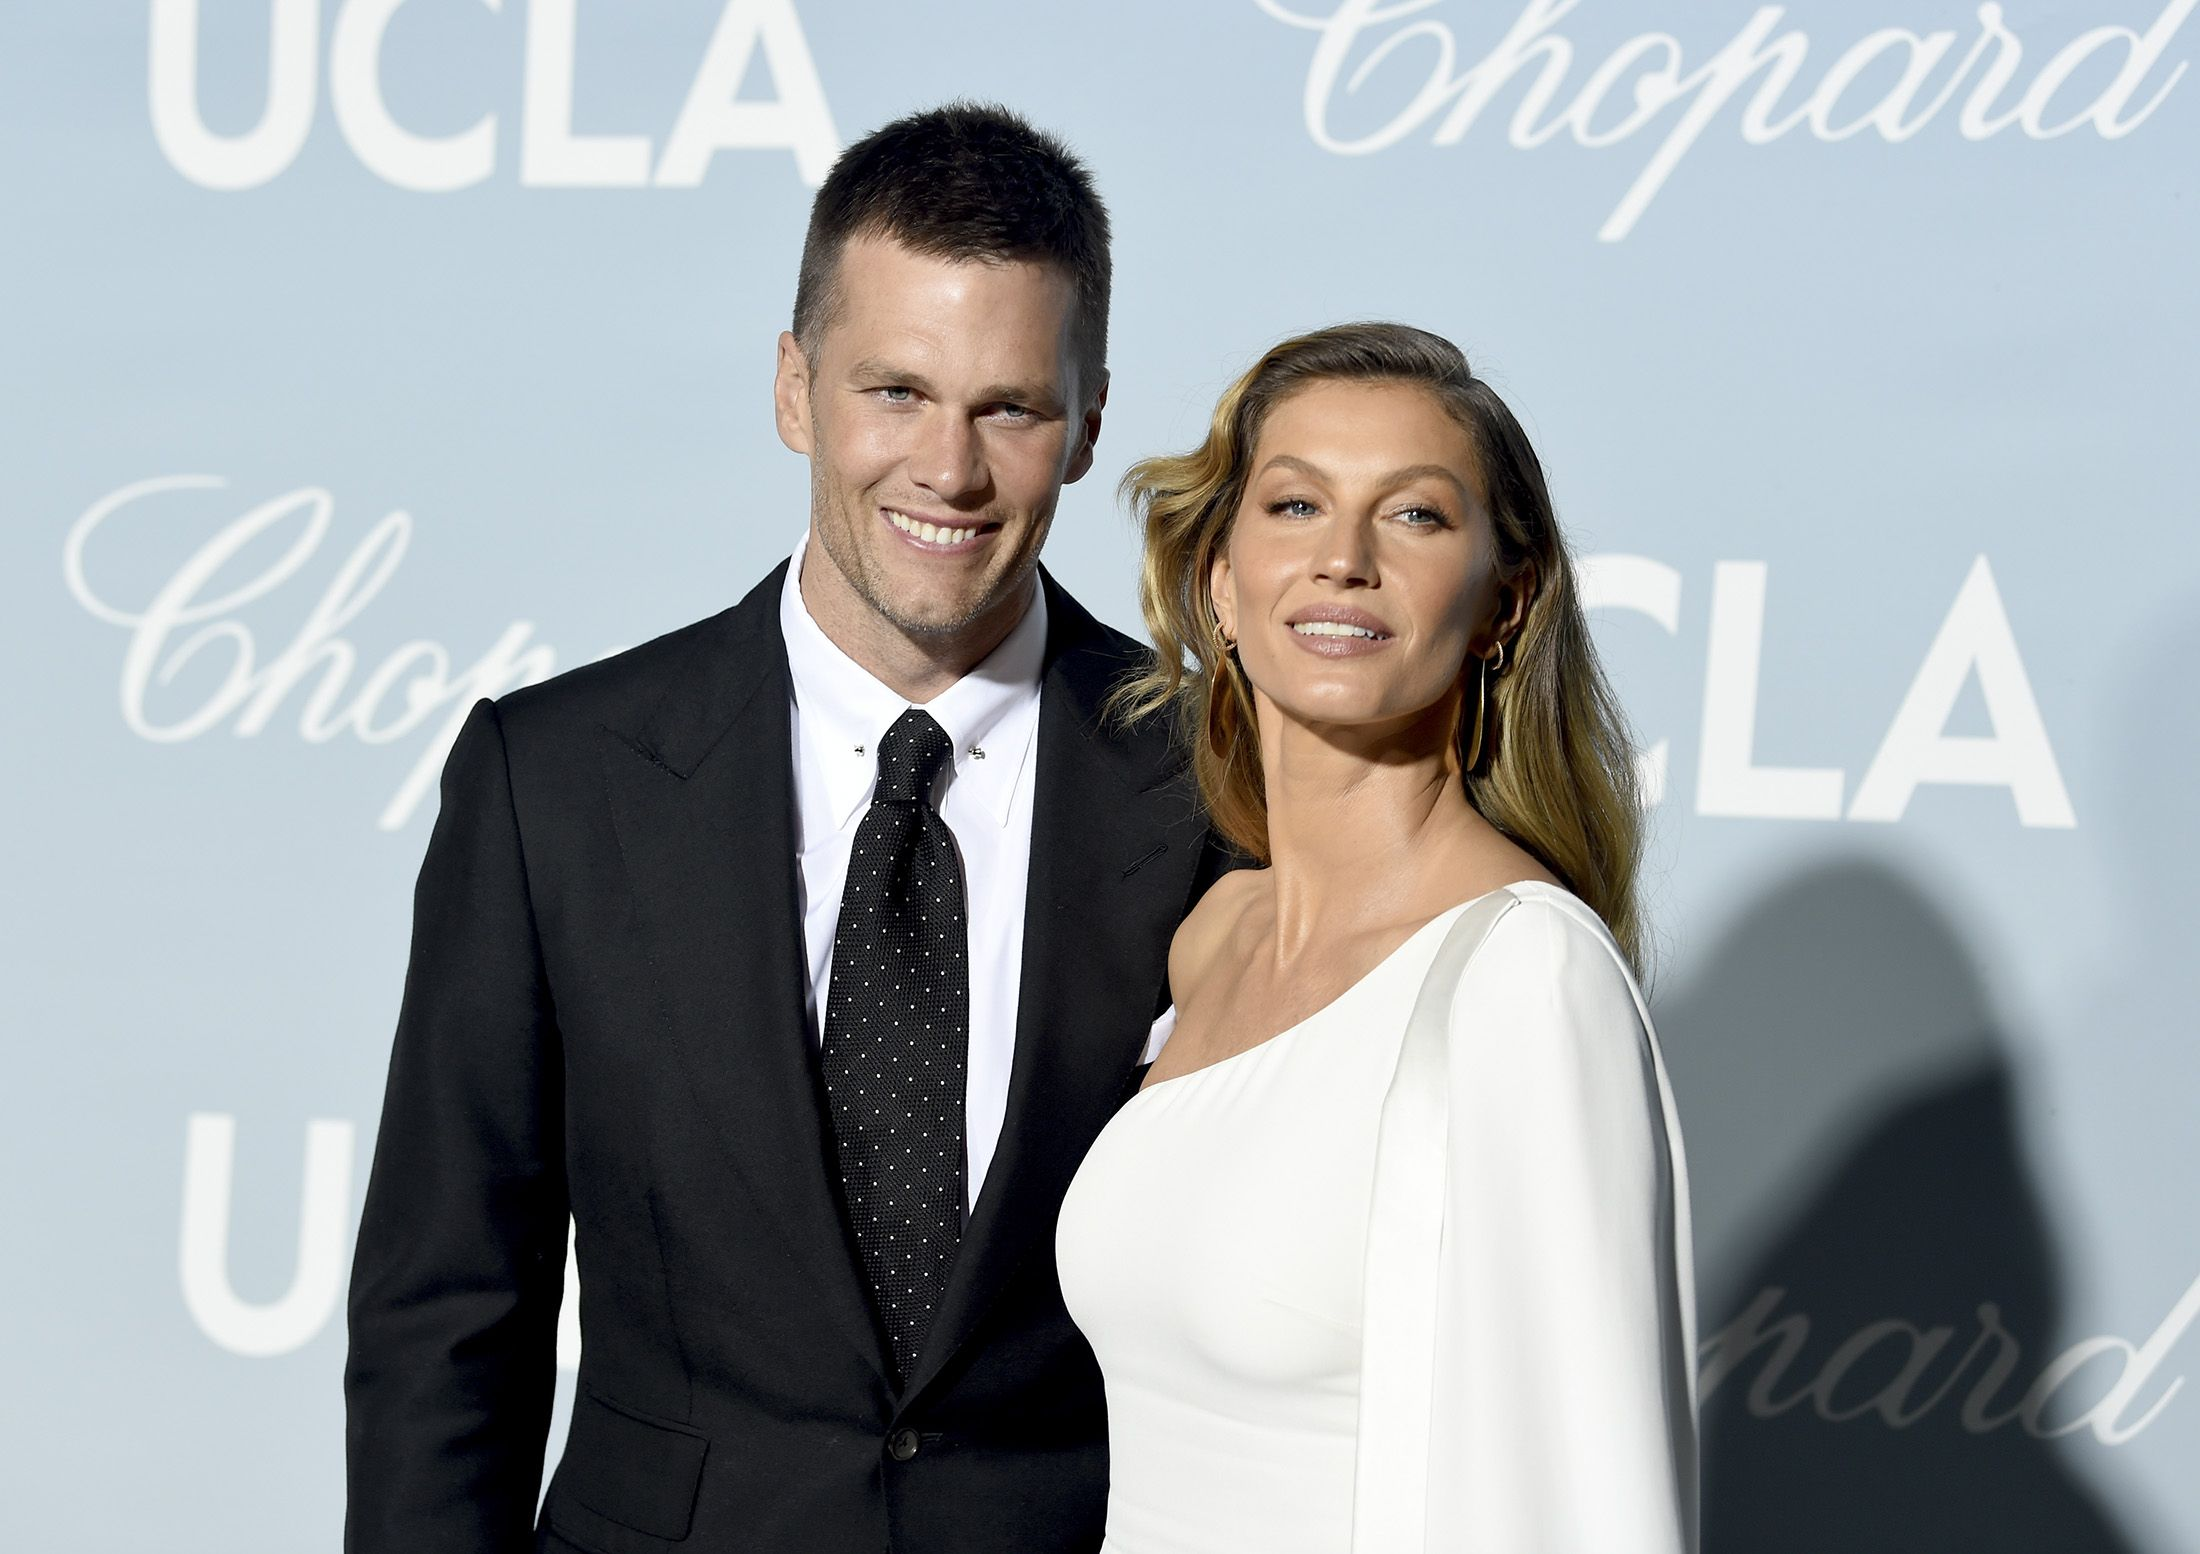 Tom Brady and Gisele Bündchen in 2019 at the Hollywood For Science Gala.